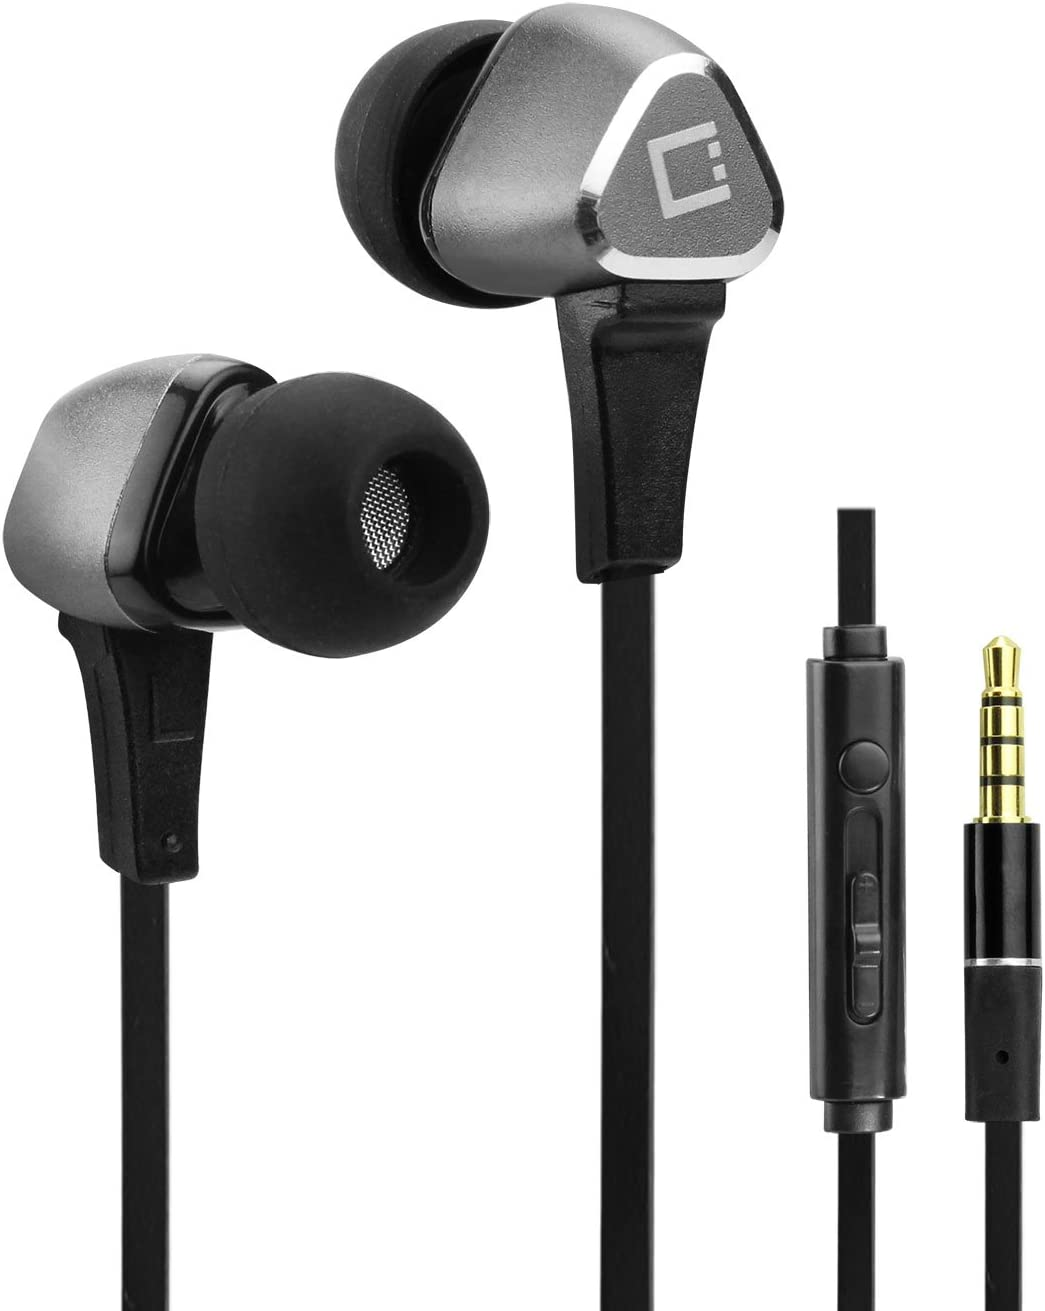 Cellet Hands Free Stereo in-Ear Headphones with Built-in Microphone and Multi-Function Remote, Compatible for Kyocera DuraForce Pro 1/2,Dura XV LTE,Cadence LTE,Google Pixel XL,Asus ZenFone V Live